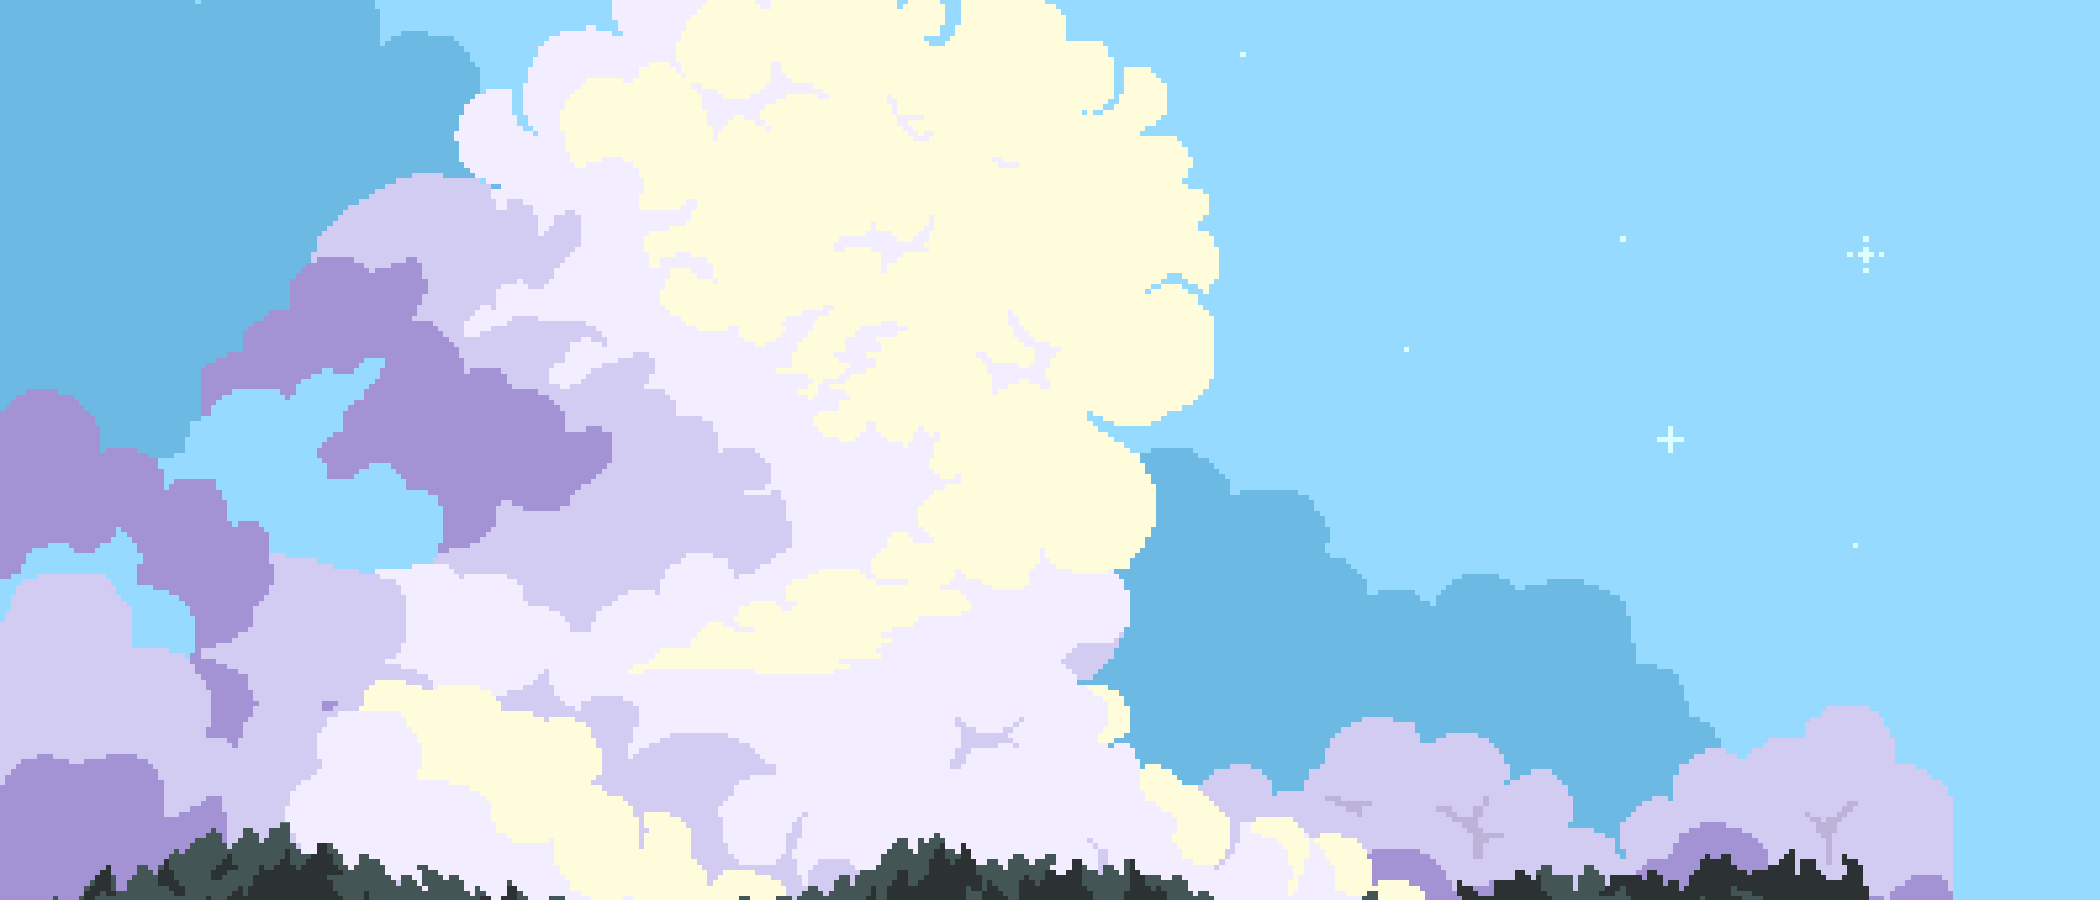 FREE pixelart clouds background